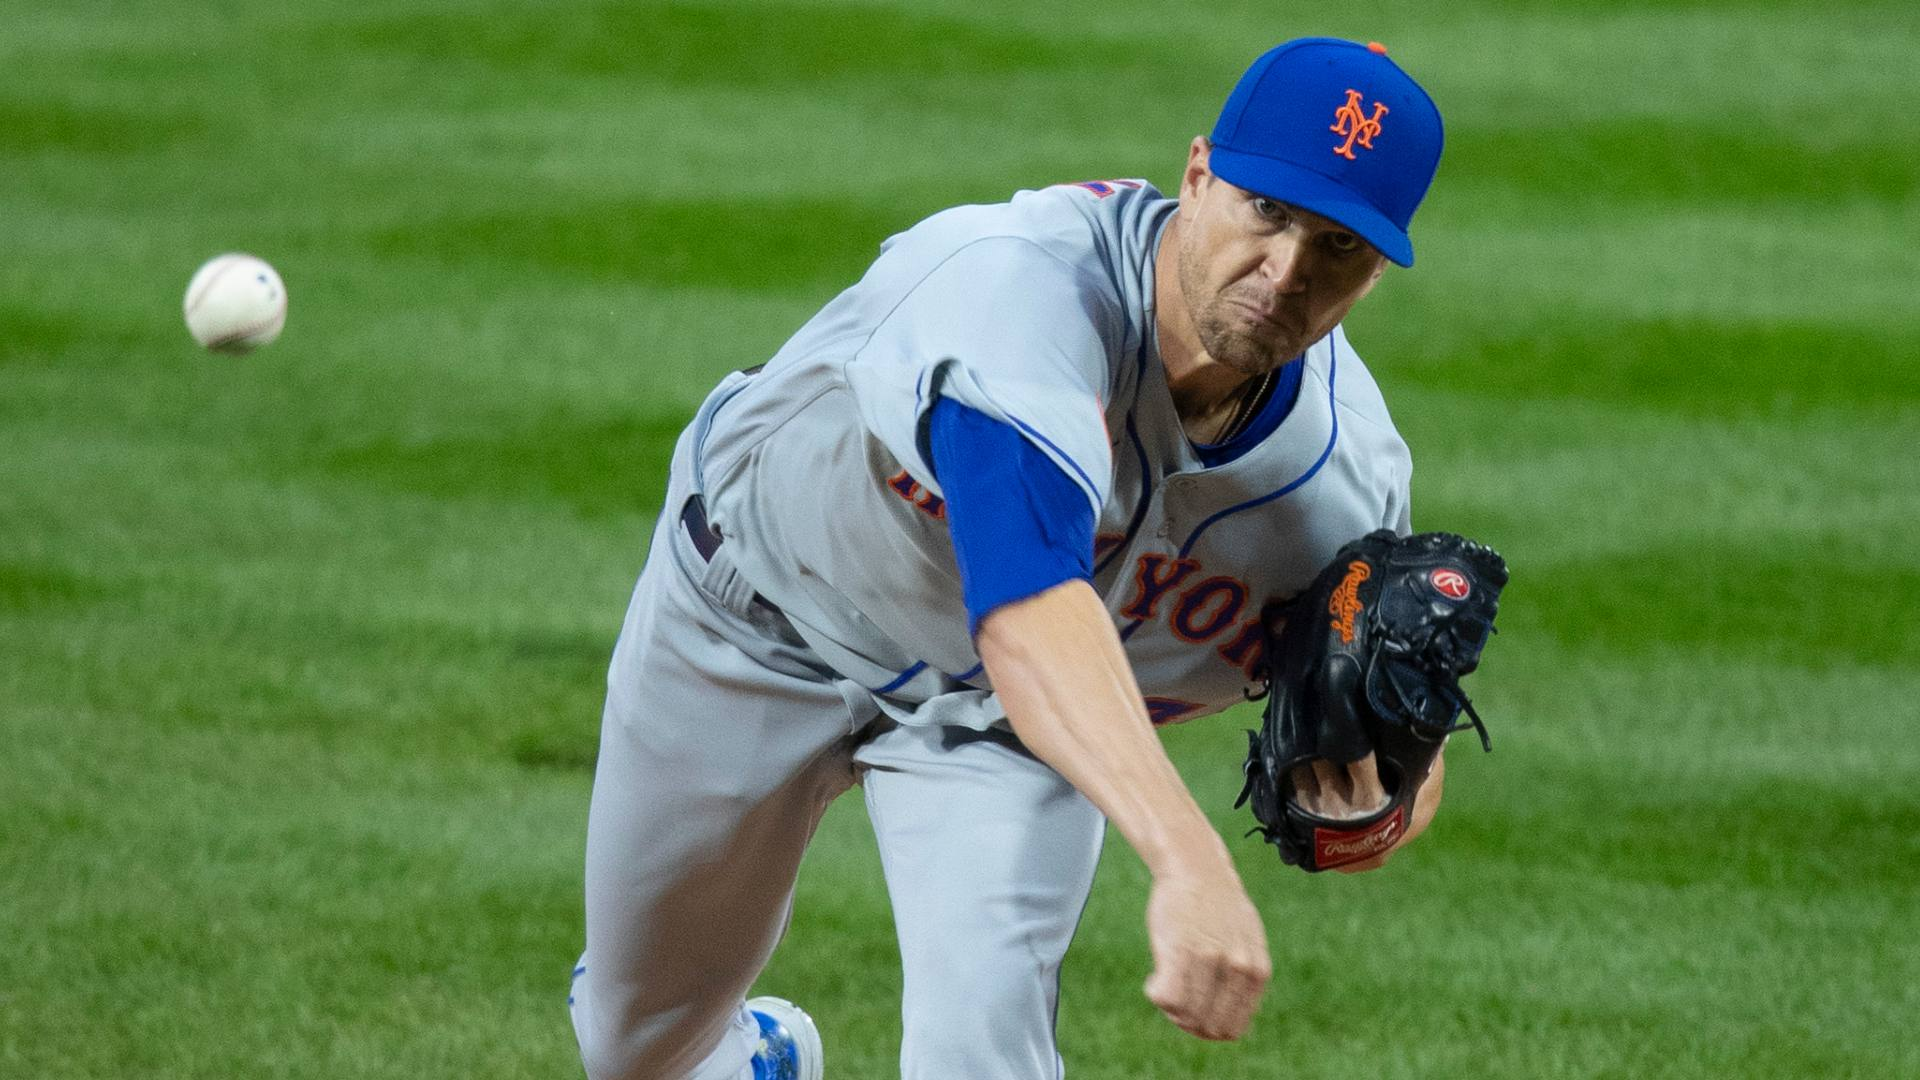 Jacob deGrom injury update: Mets ace leaves after three innings with shoulder pain